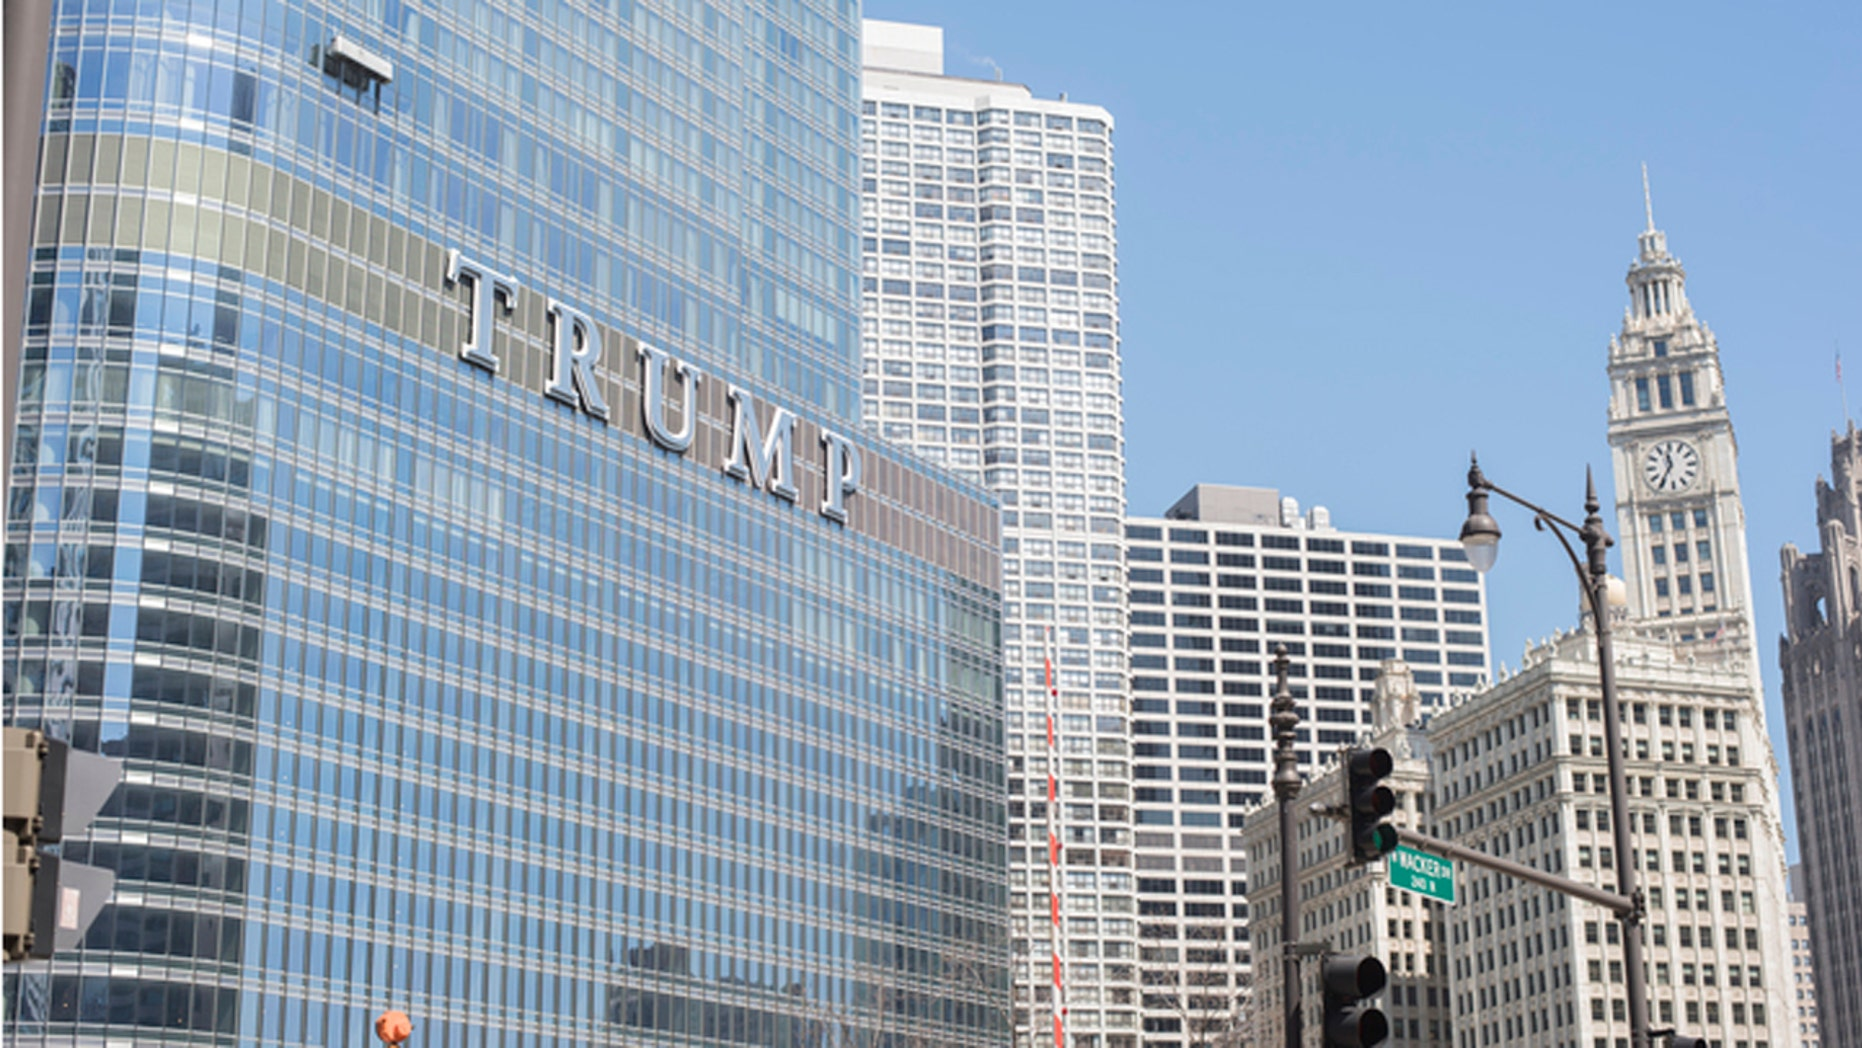 A woman claims she was offered a great rate at the Trump Hotel in Chicago — only to have the deal fall through.